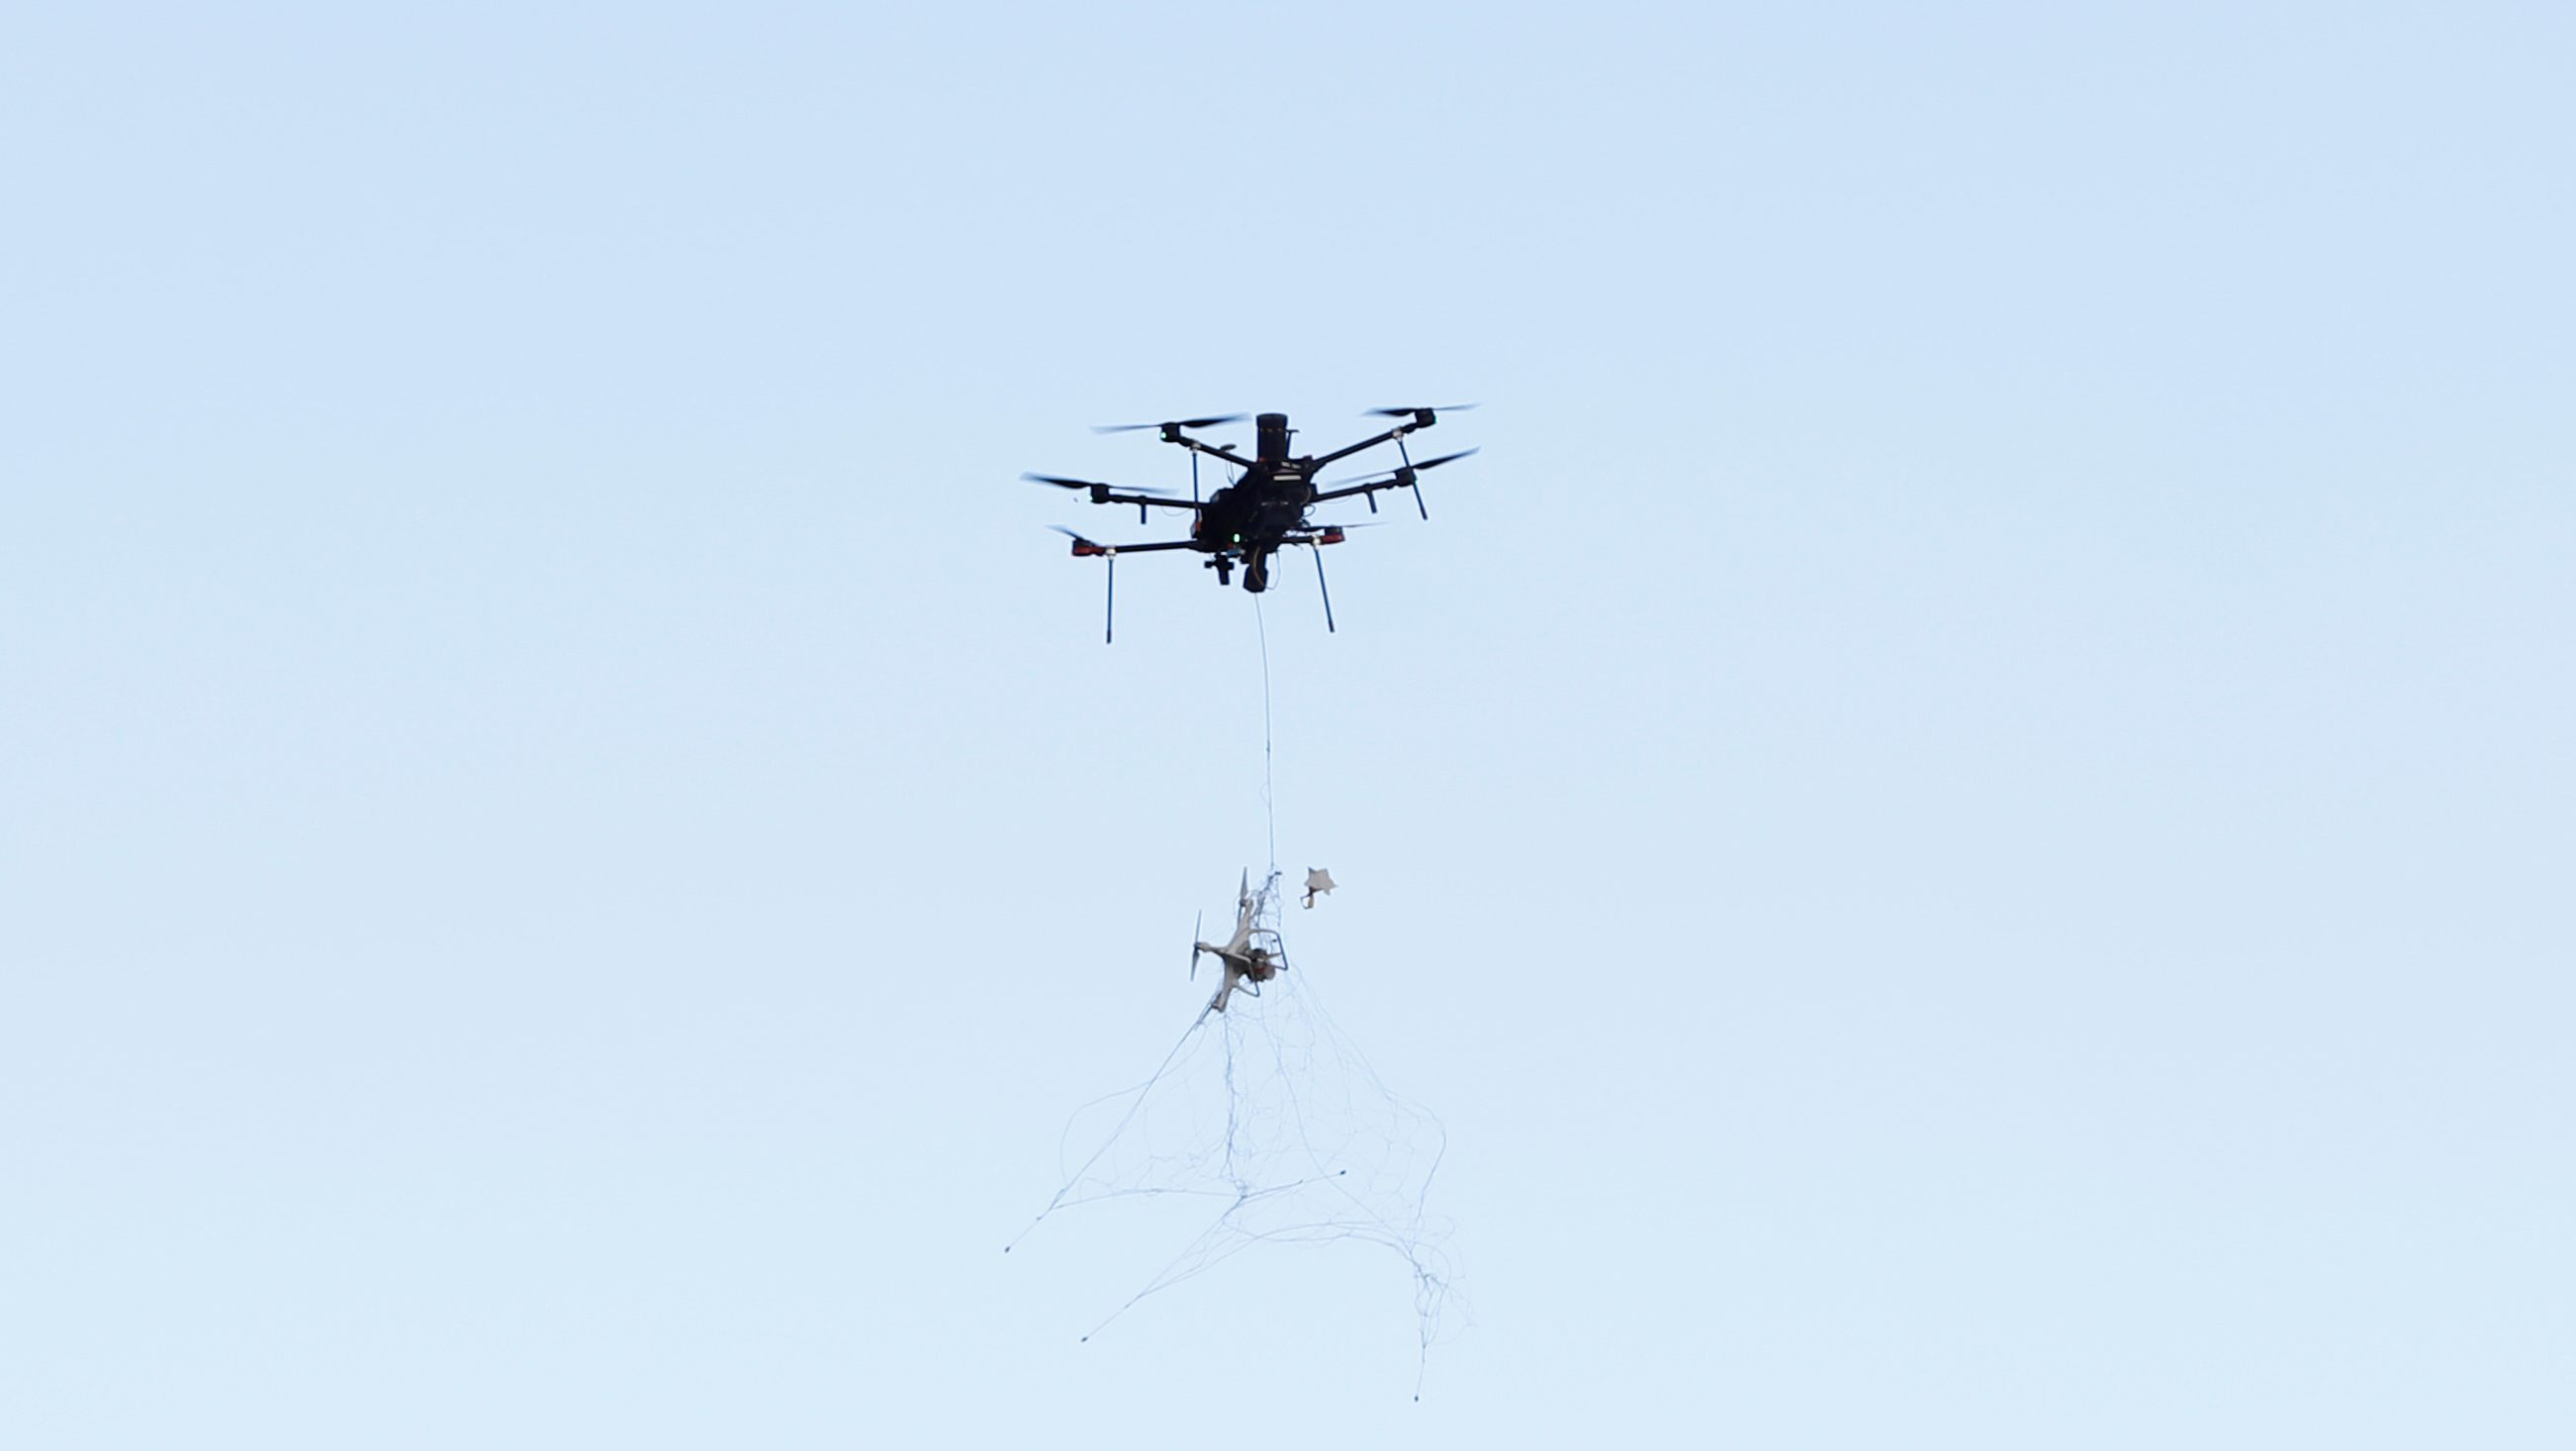 An Airspace Systems Interceptor autonomous aerial drone releases a kevlar net to capture a simulated hostile drone during a product demonstration in Castro Valley, California March 6, 2017.  Picture taken March 6, 2017.